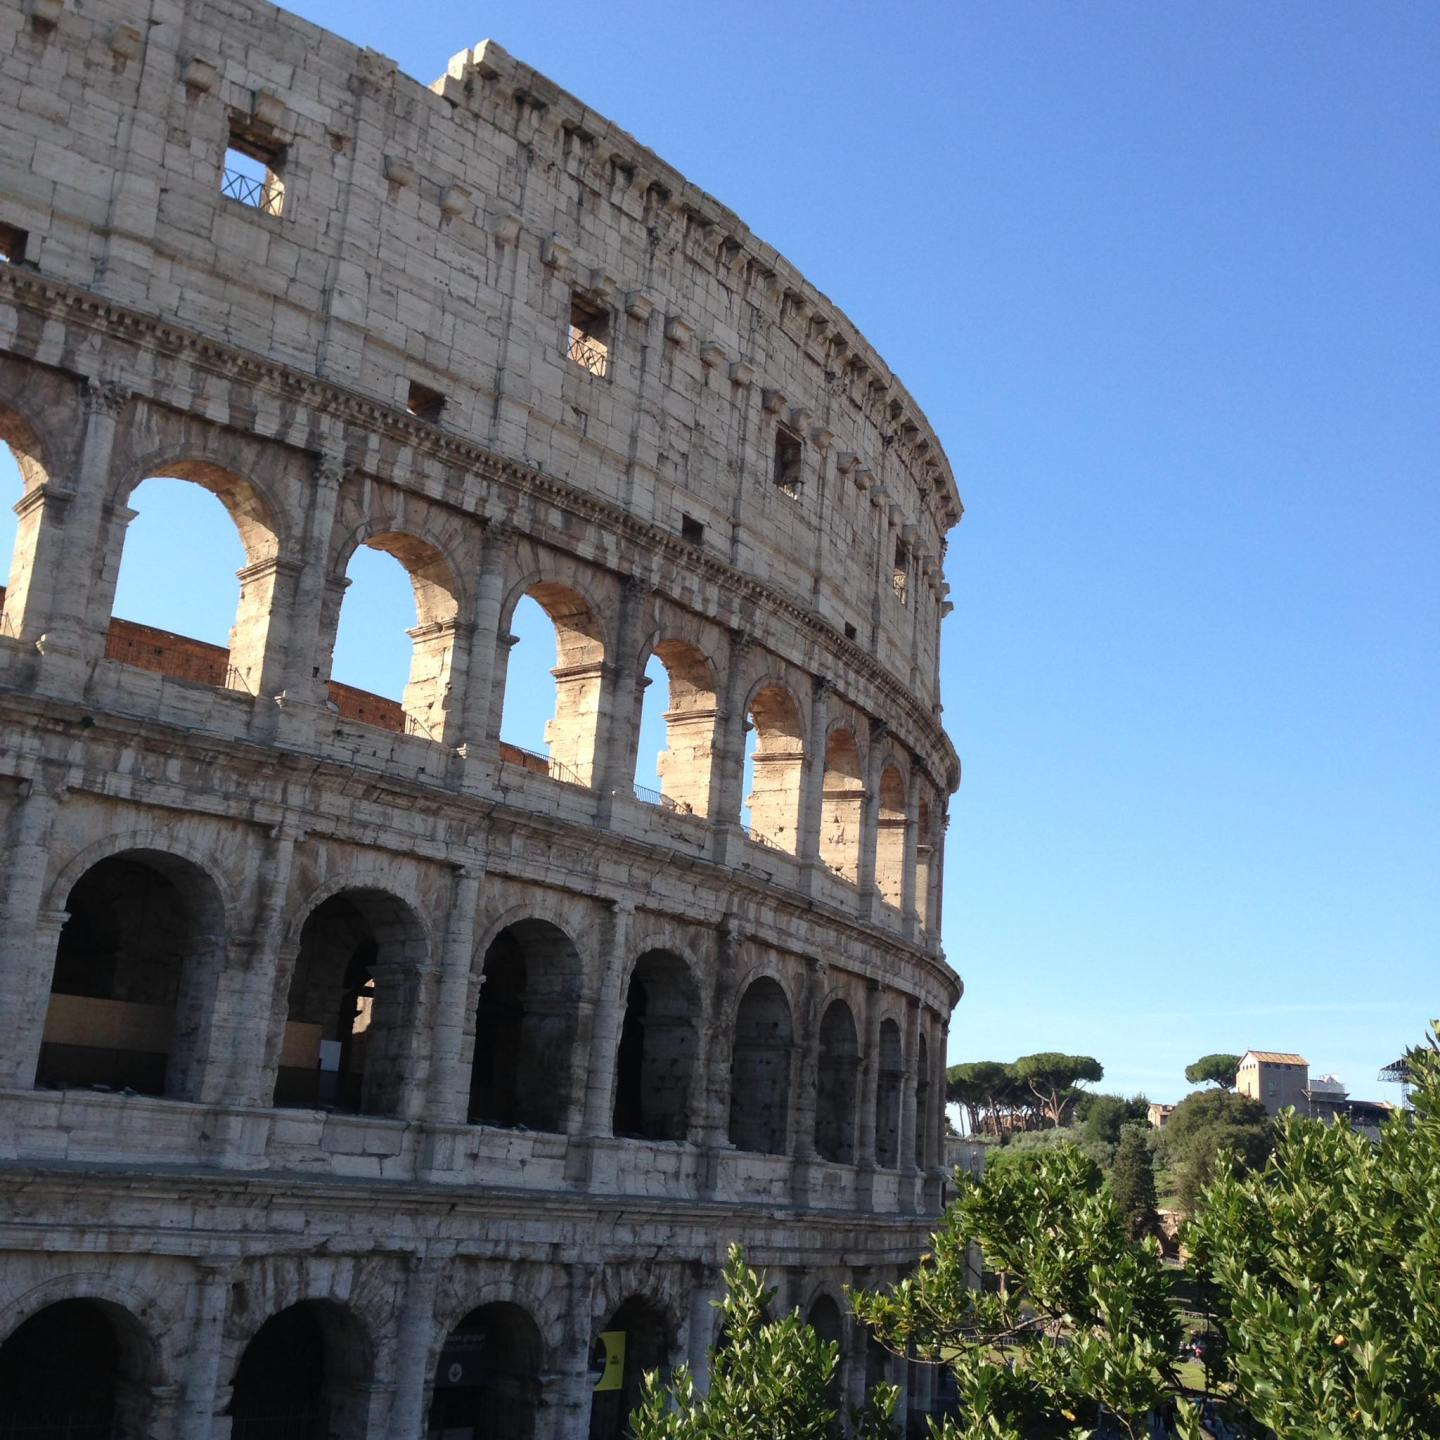 Enjoying Our Surprise Trip To Rome, Colosseum